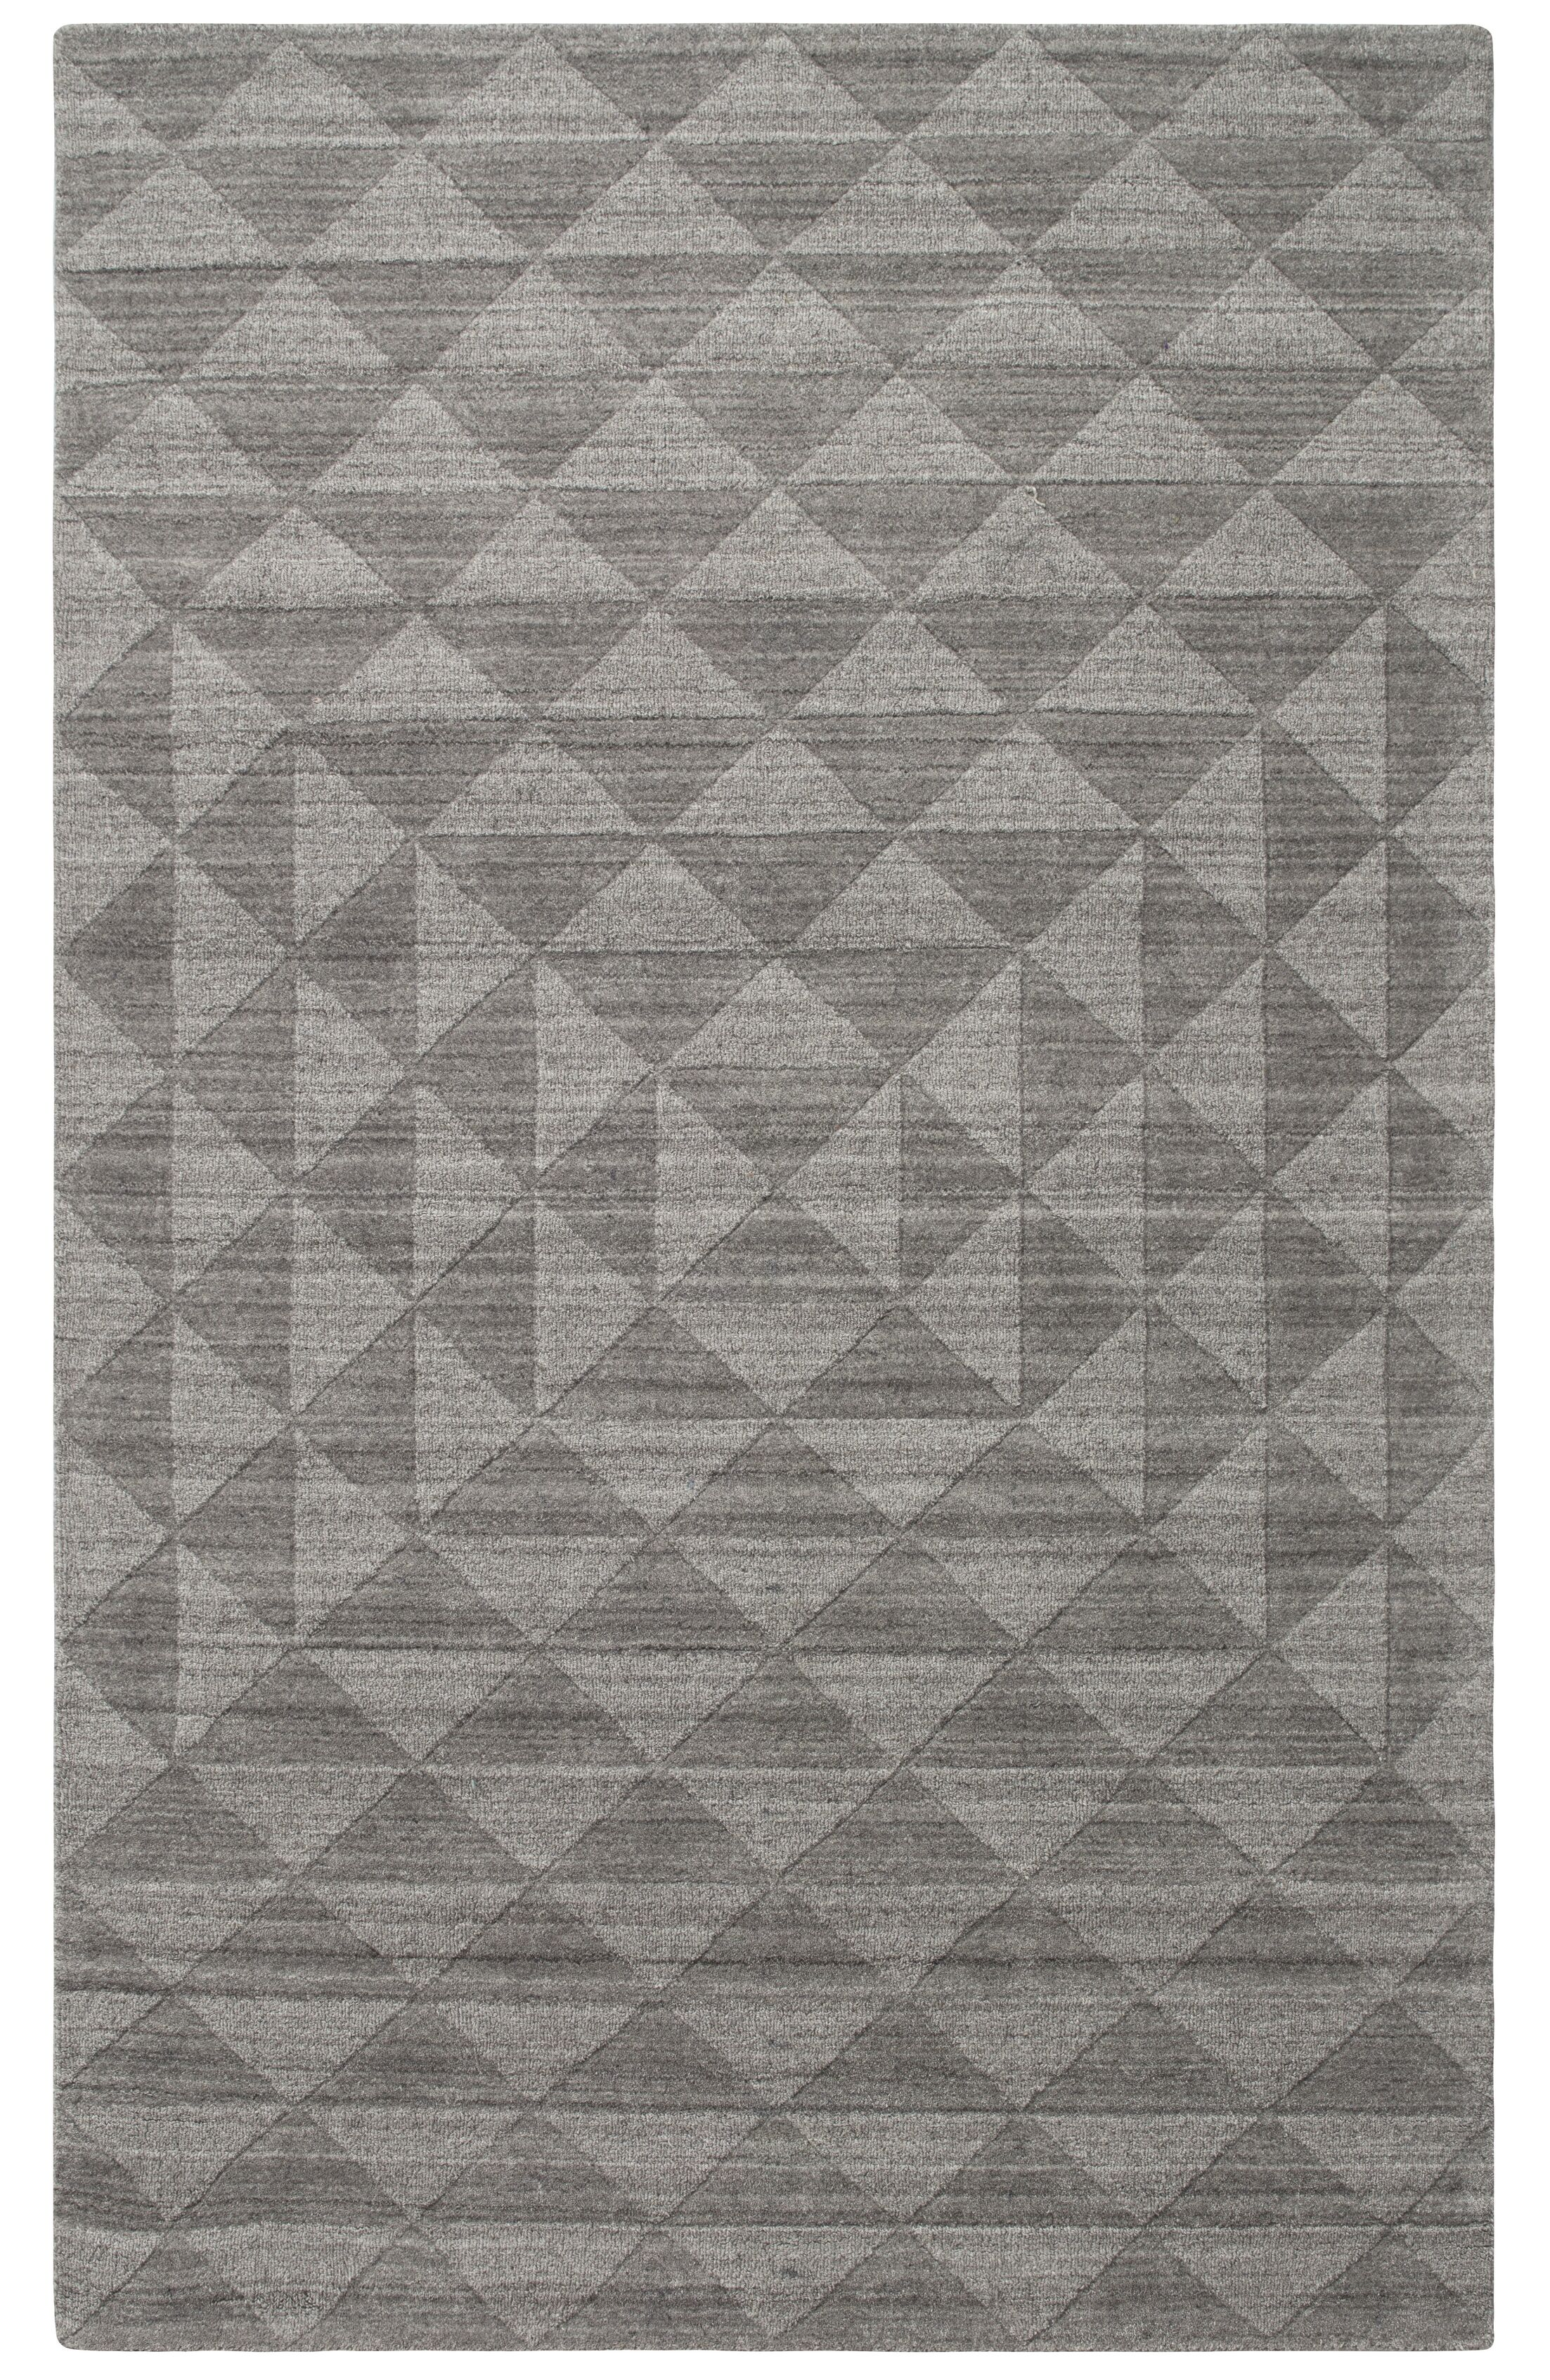 Fergerson Gray Area Rug Rug Size: Rectangle 2' x 3'